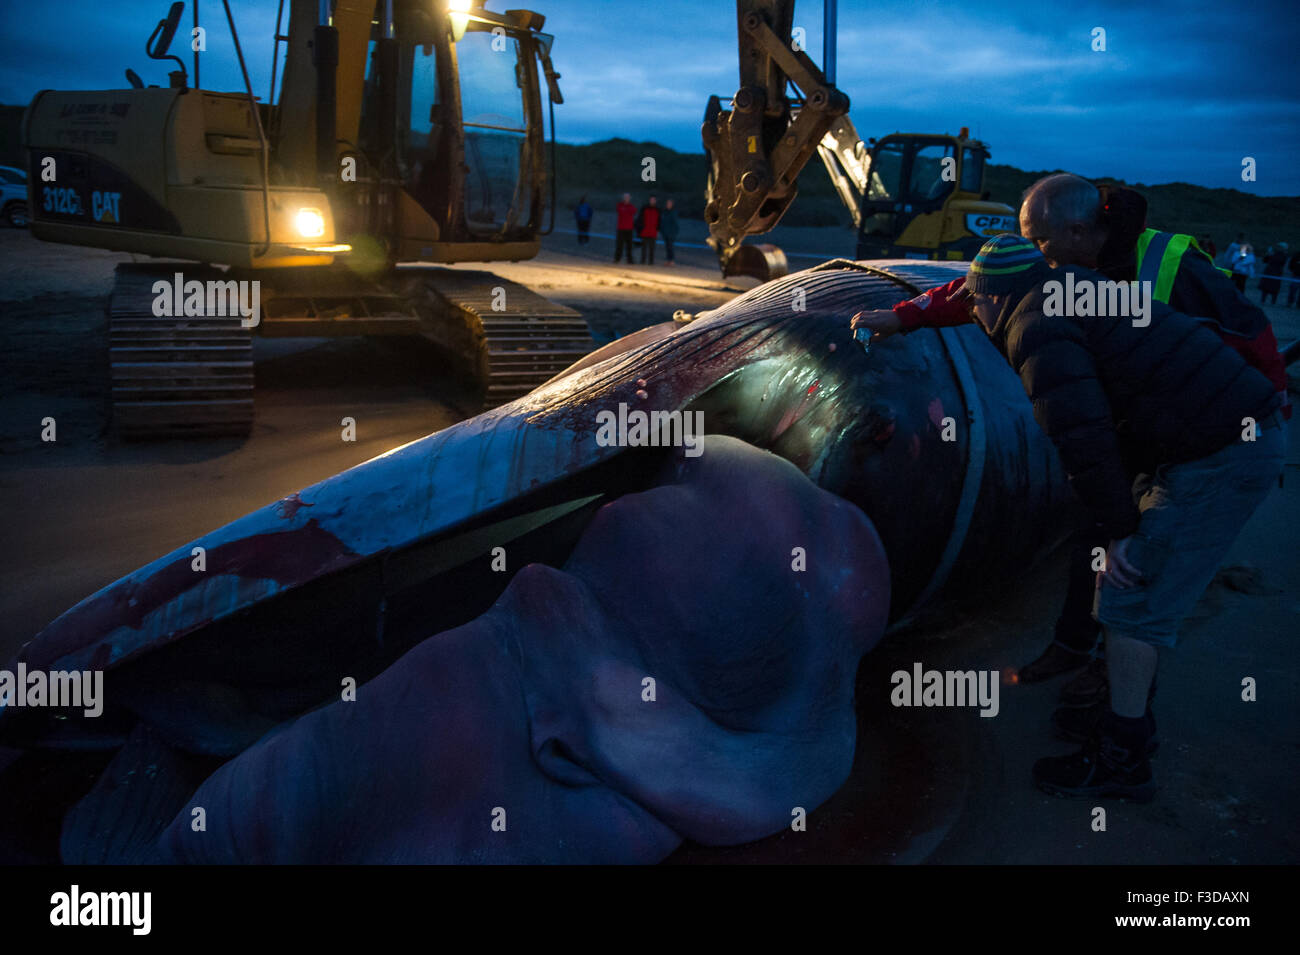 Portstewart strand, Co Derry, Northern Ireland. 5th October, 2015. Minke whale washed up at Portstewart strand, - Stock Image